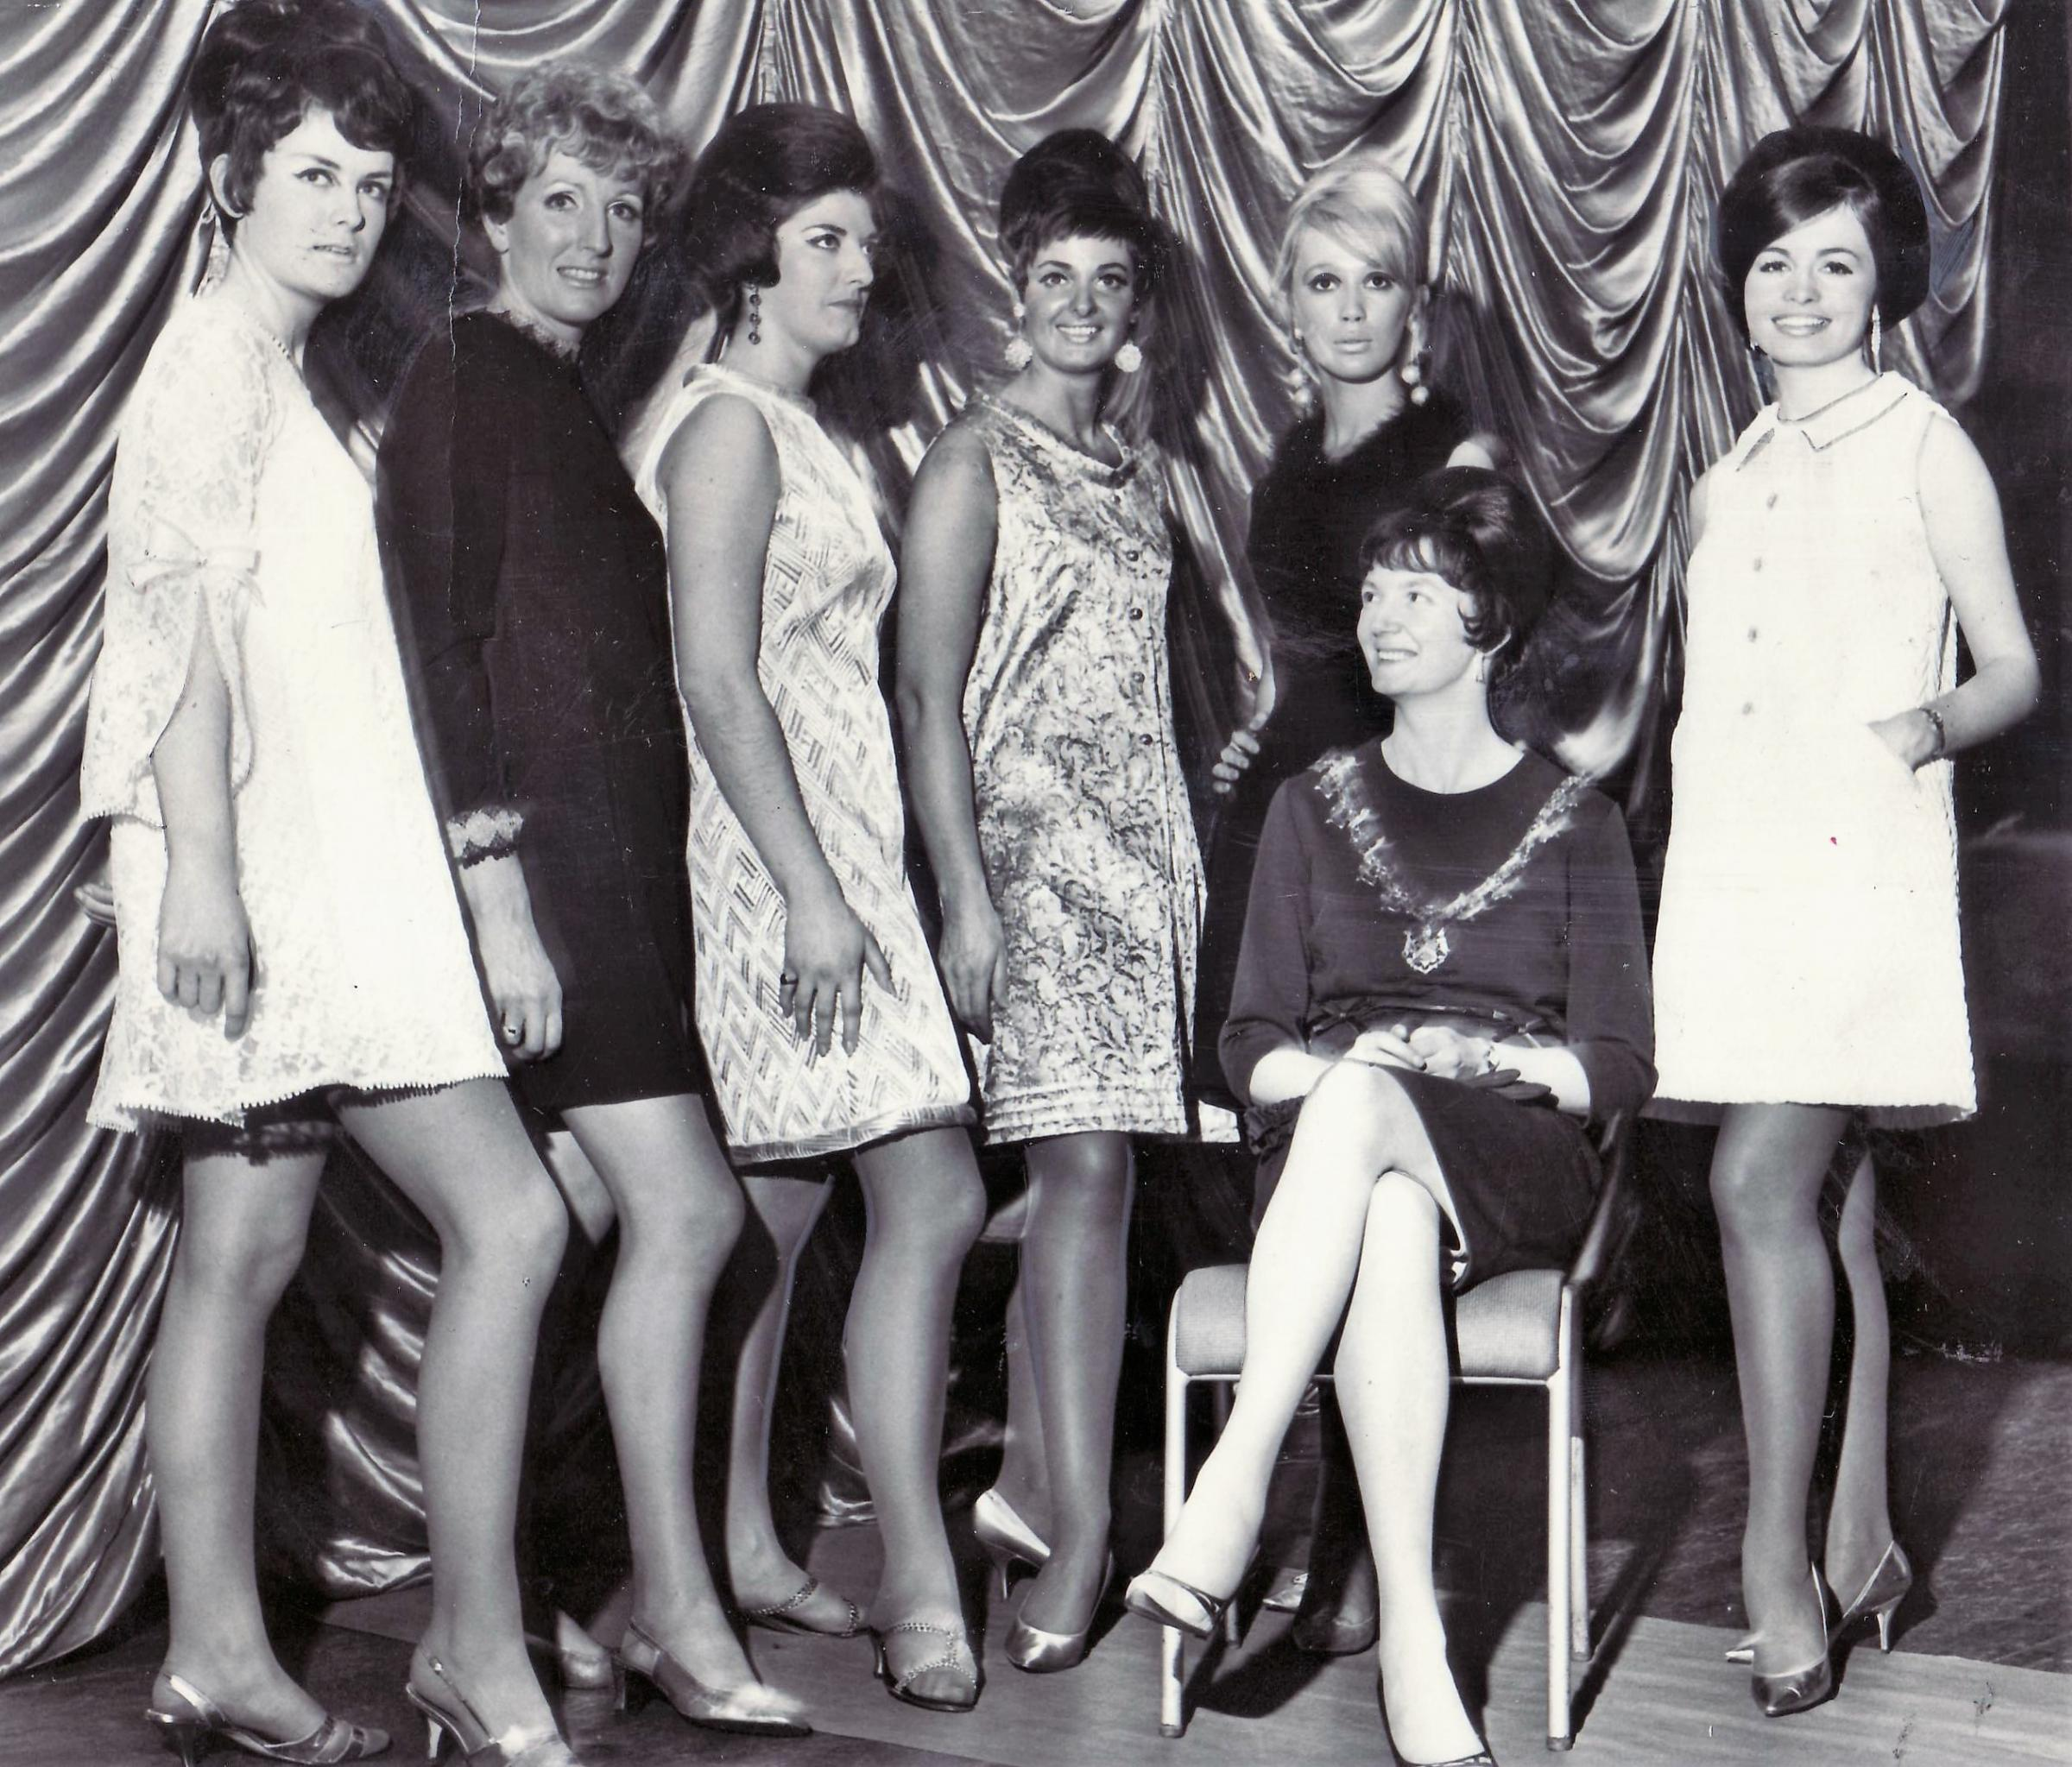 December 1, 1967 fashion show at Queen's Hall